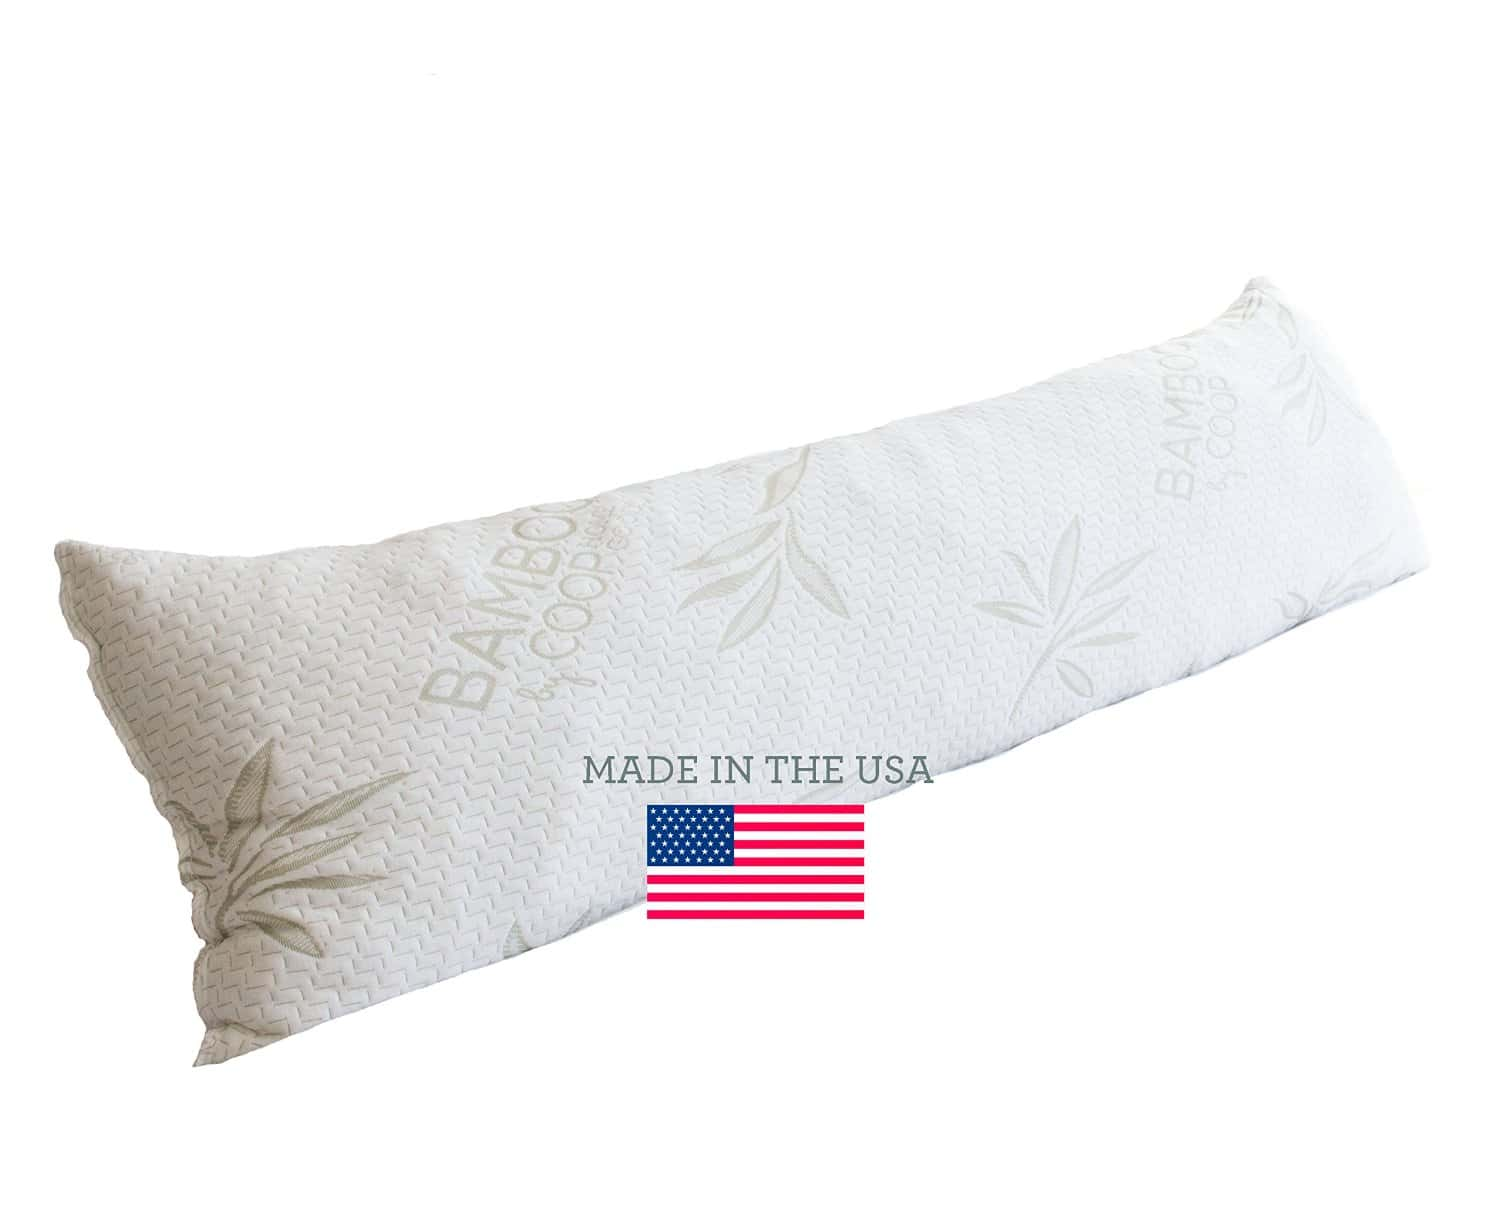 Best Body Pillow 7 Top Choices That Will Give The Relief